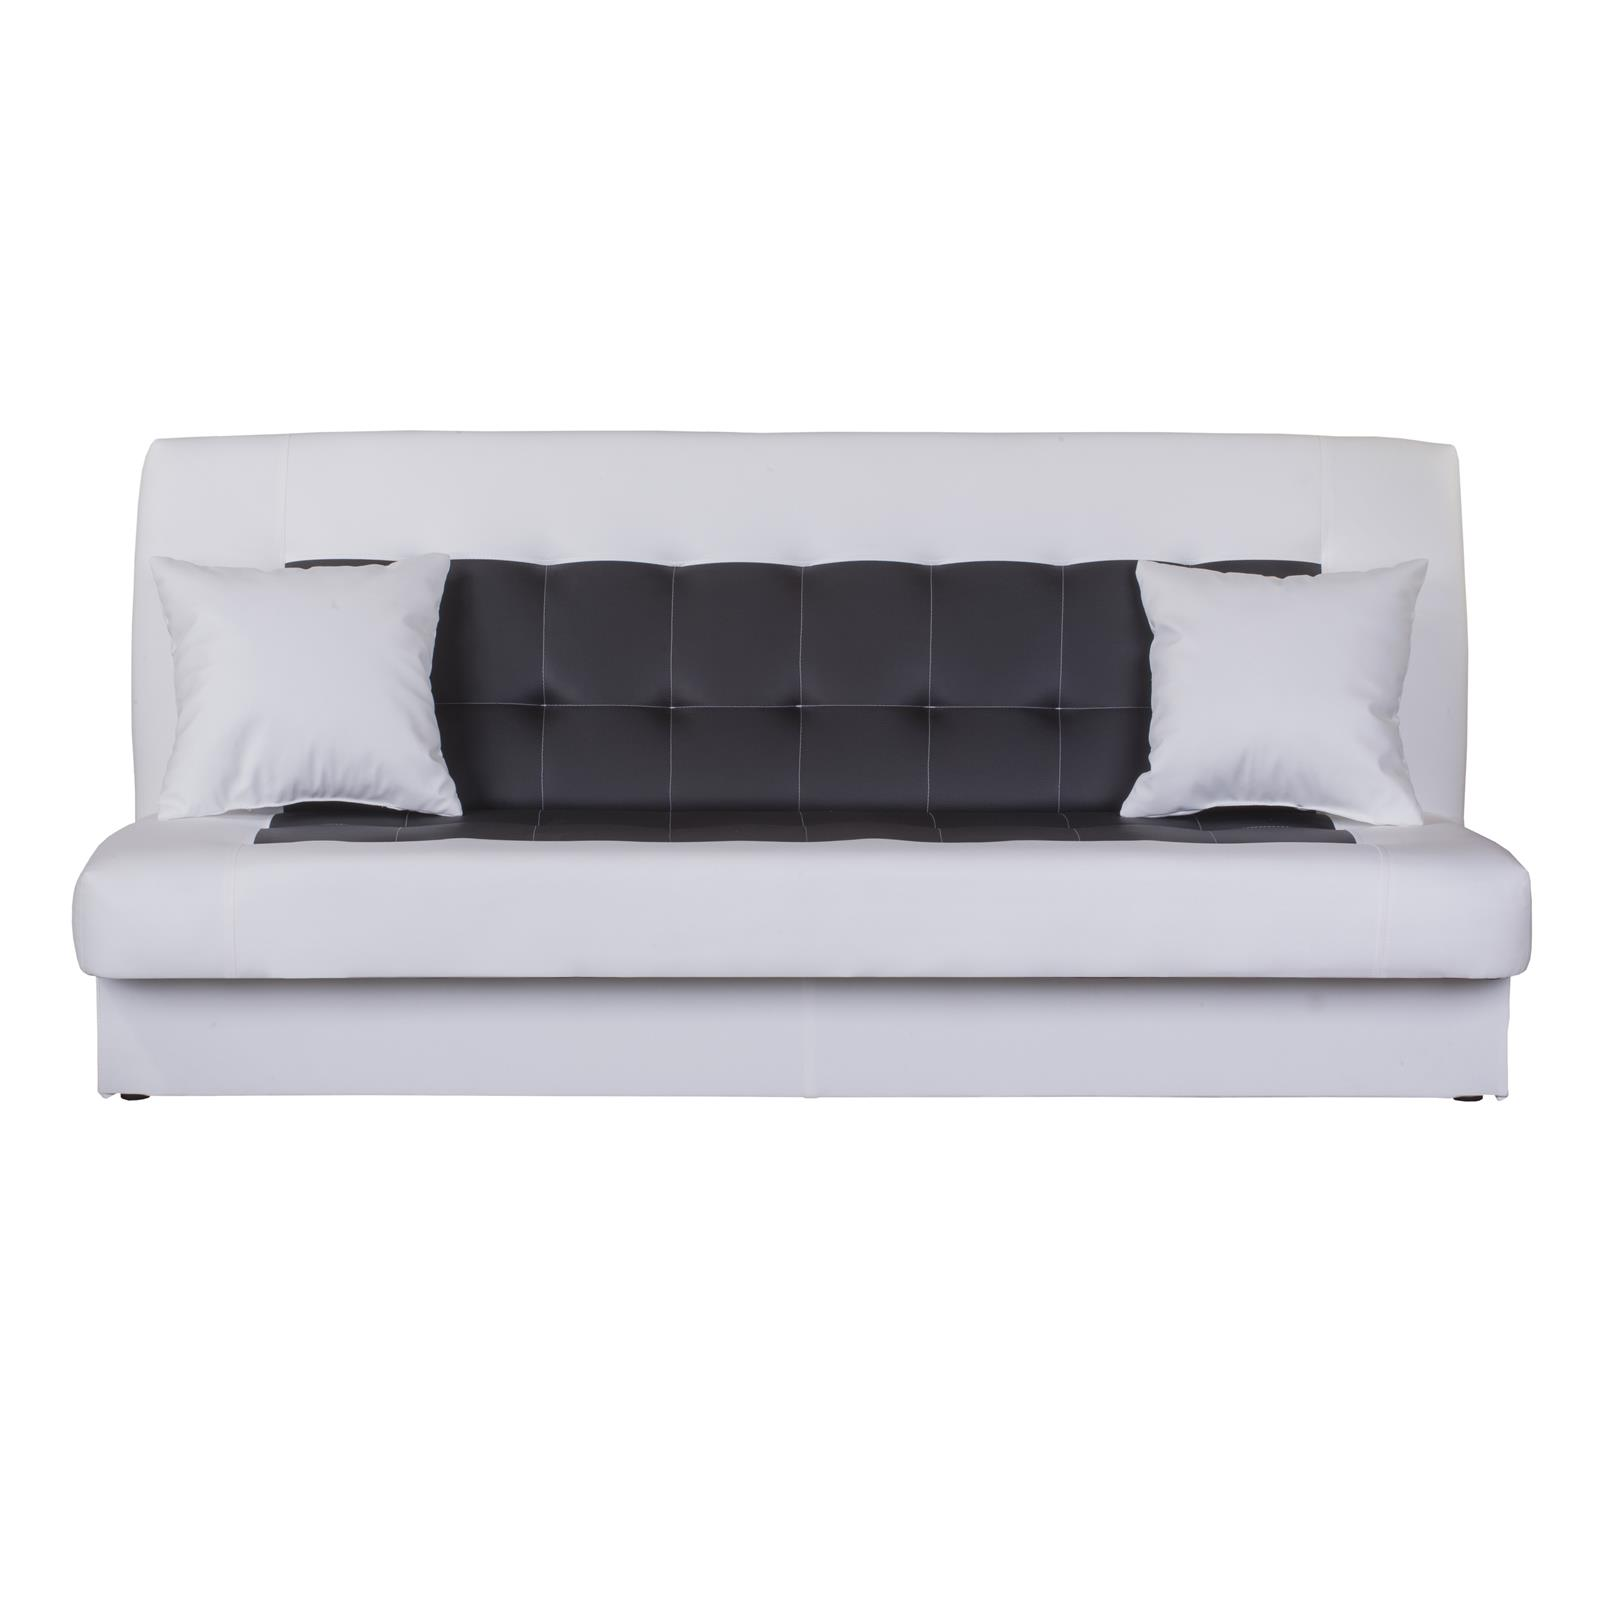 schlafcouch sofa 3 sitzer weiss schwarz grau mit bettkasten funktion design ebay. Black Bedroom Furniture Sets. Home Design Ideas